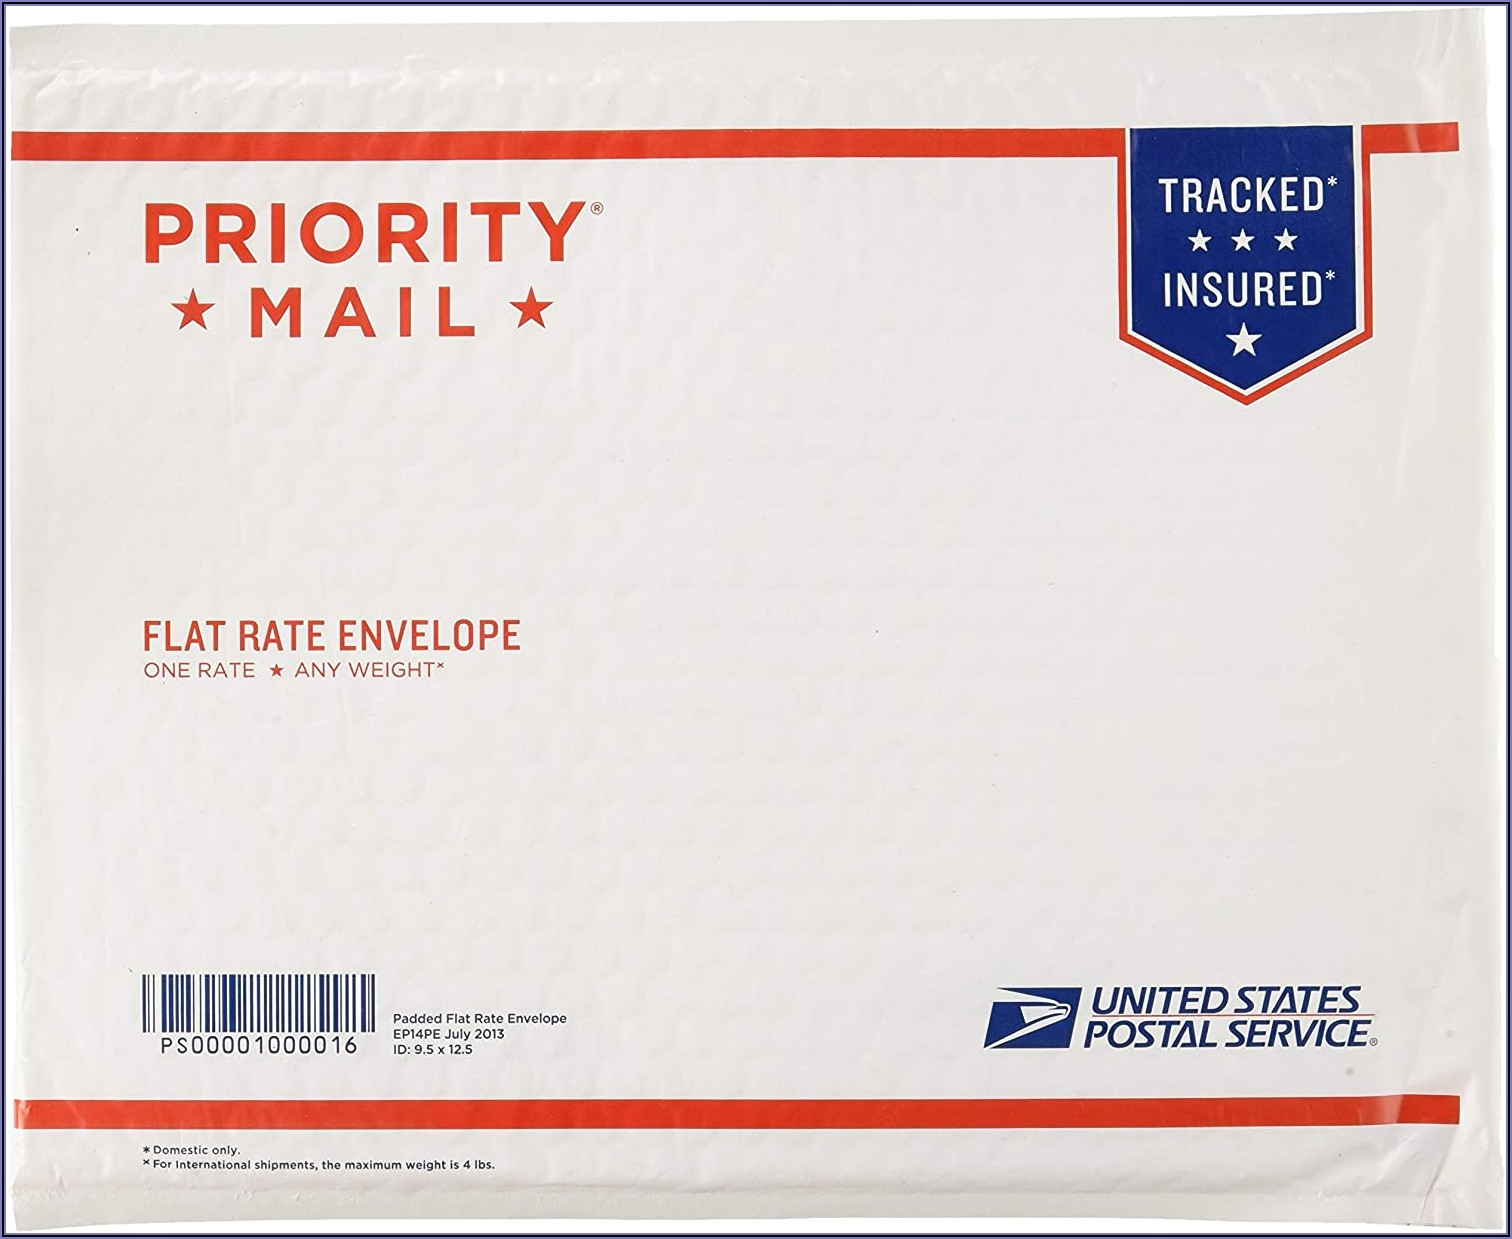 Priority Mail Envelope Usps Cost